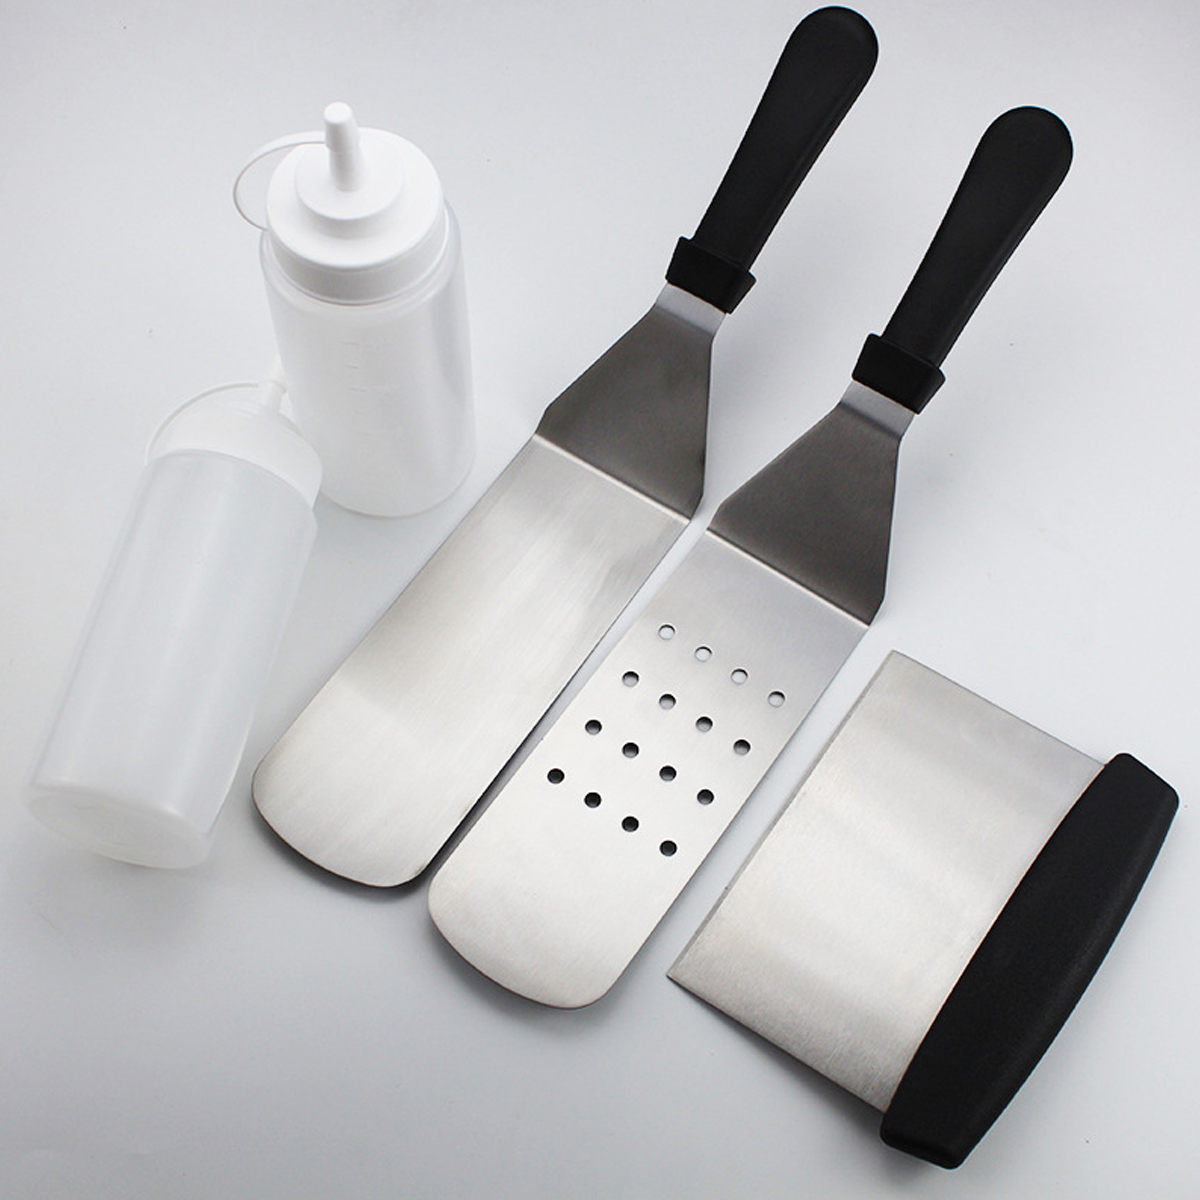 5Pcs Stainless Steel Griddle Cooking Tools Kit for Grill Salad Scraper Chopper Pizza BBQ Baking Kitchen Tools